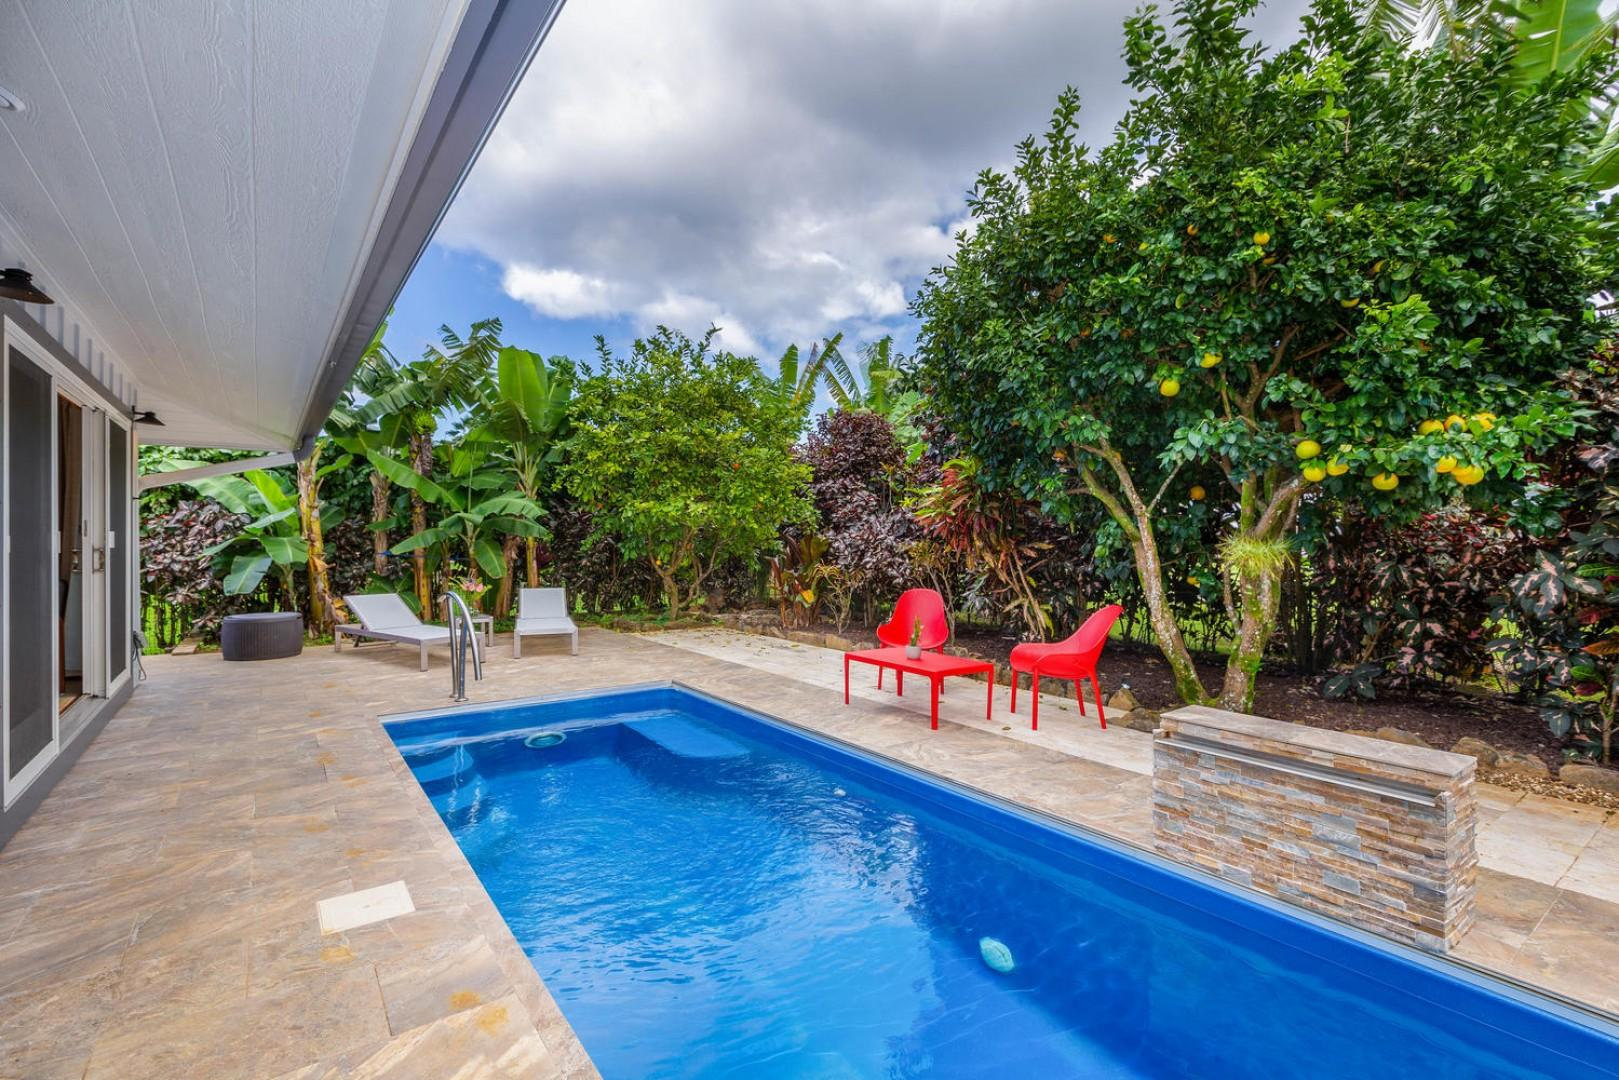 Pool surrounded by tropical landscaping